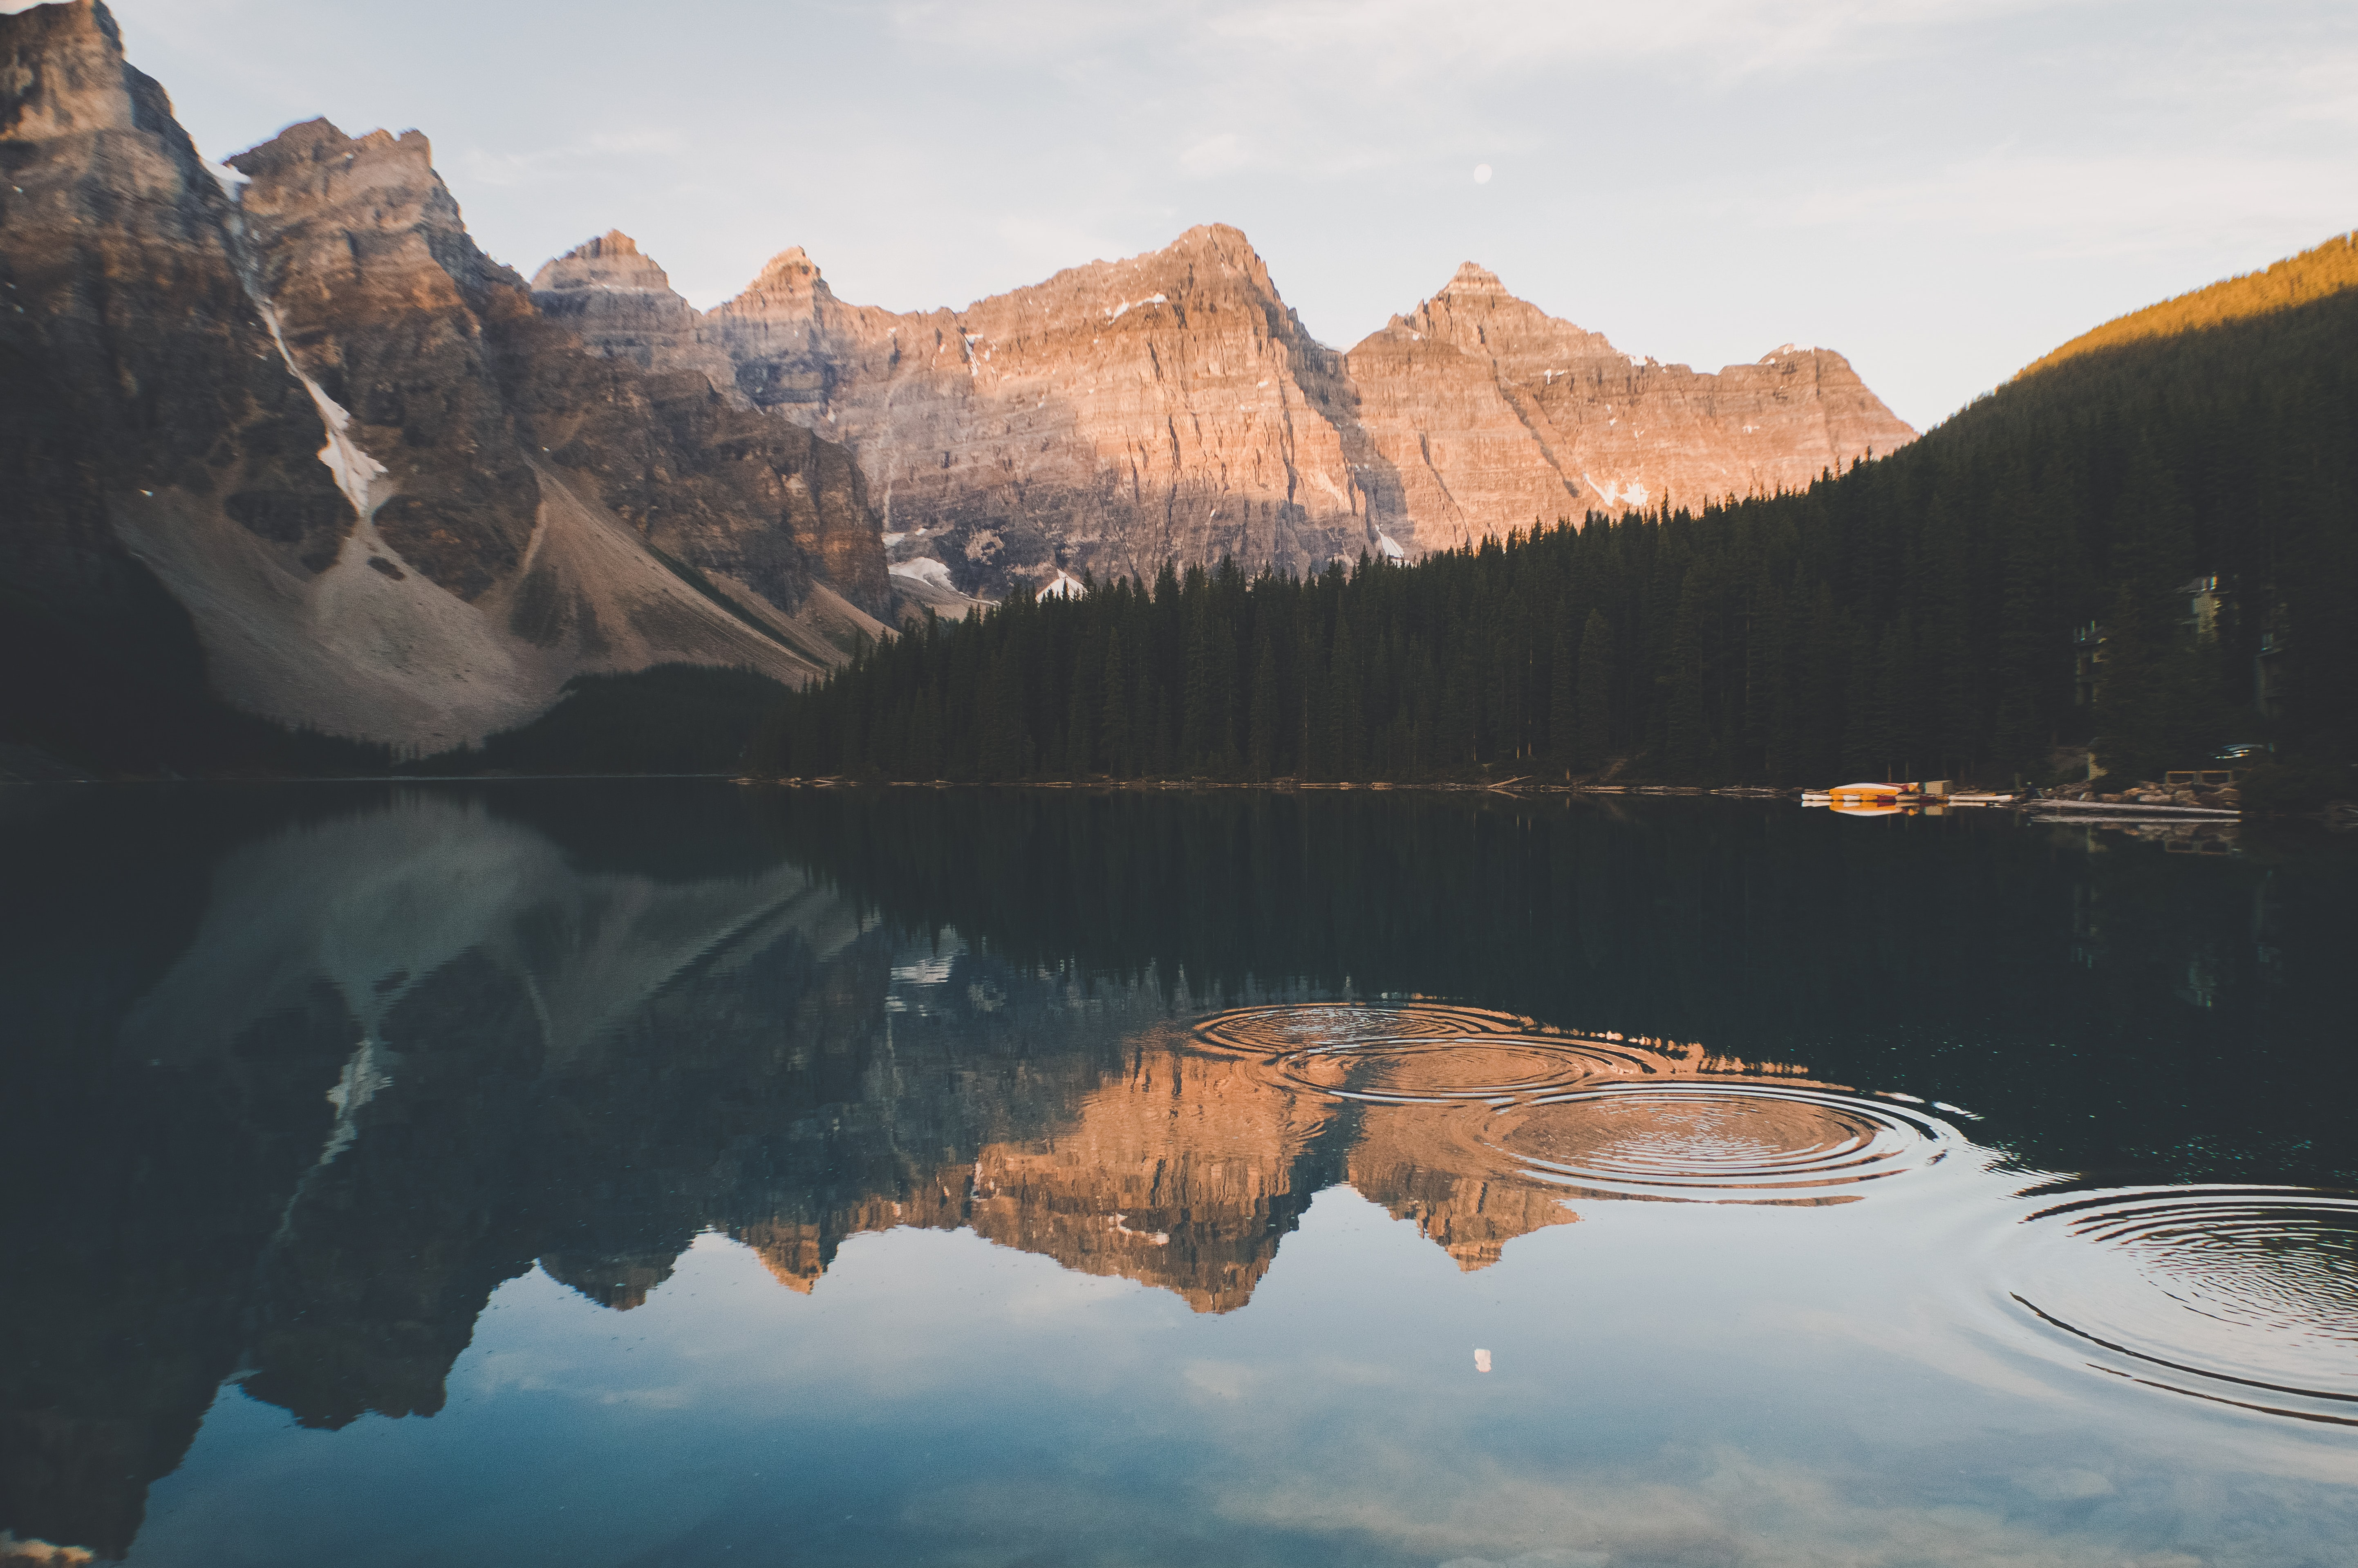 Ripples on the surface of a lake with a view on tall mountains